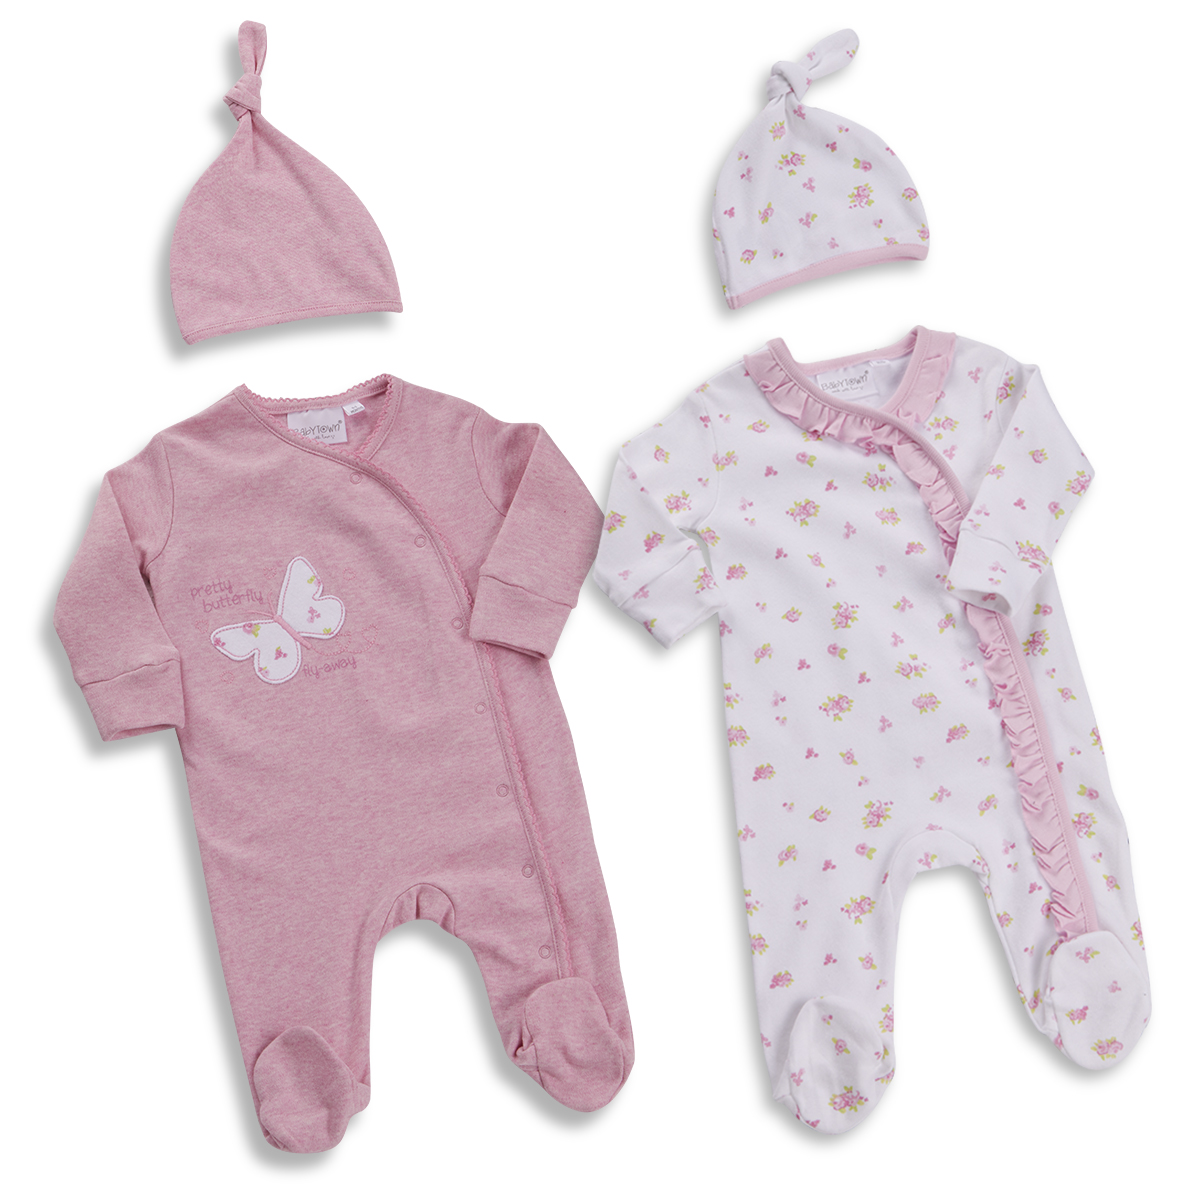 39c7713137ef1 Baby Babies Girls Sleepsuit & Hat Set All-In-One Floral 0-12 Months By  BABYTOWN